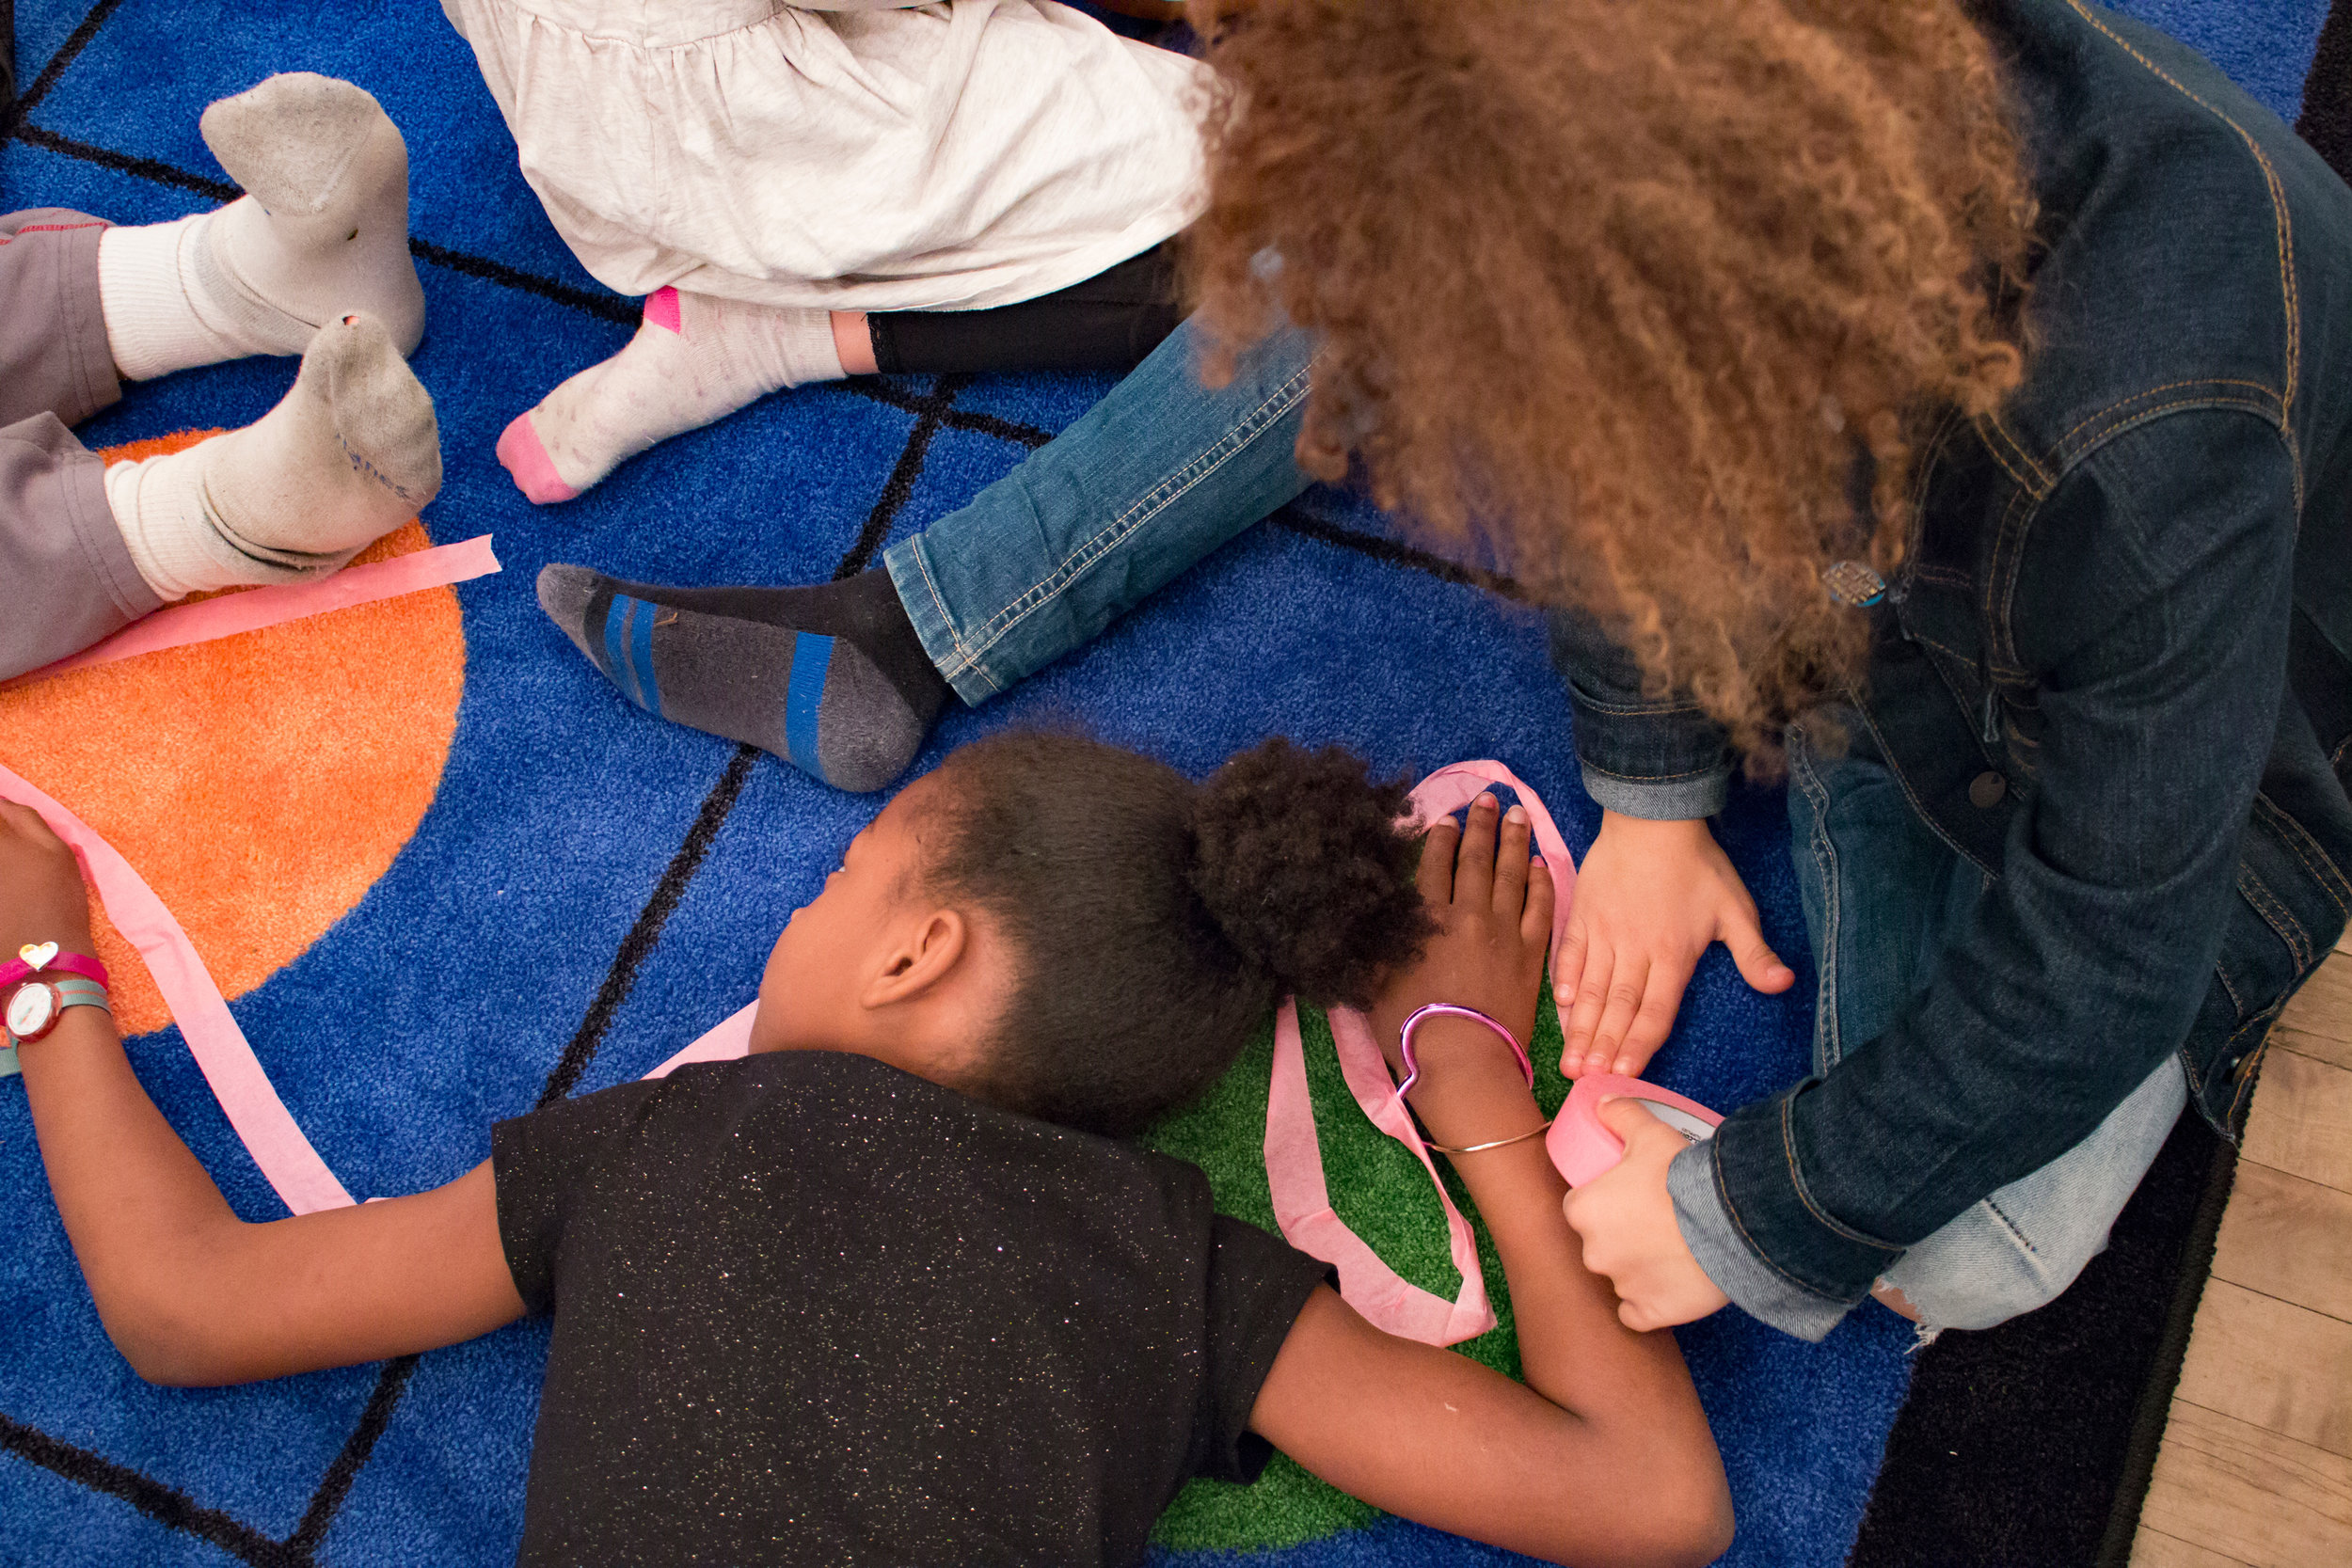 Documentation from workshop with students from The Neighborhood School, Artists Space, New York,